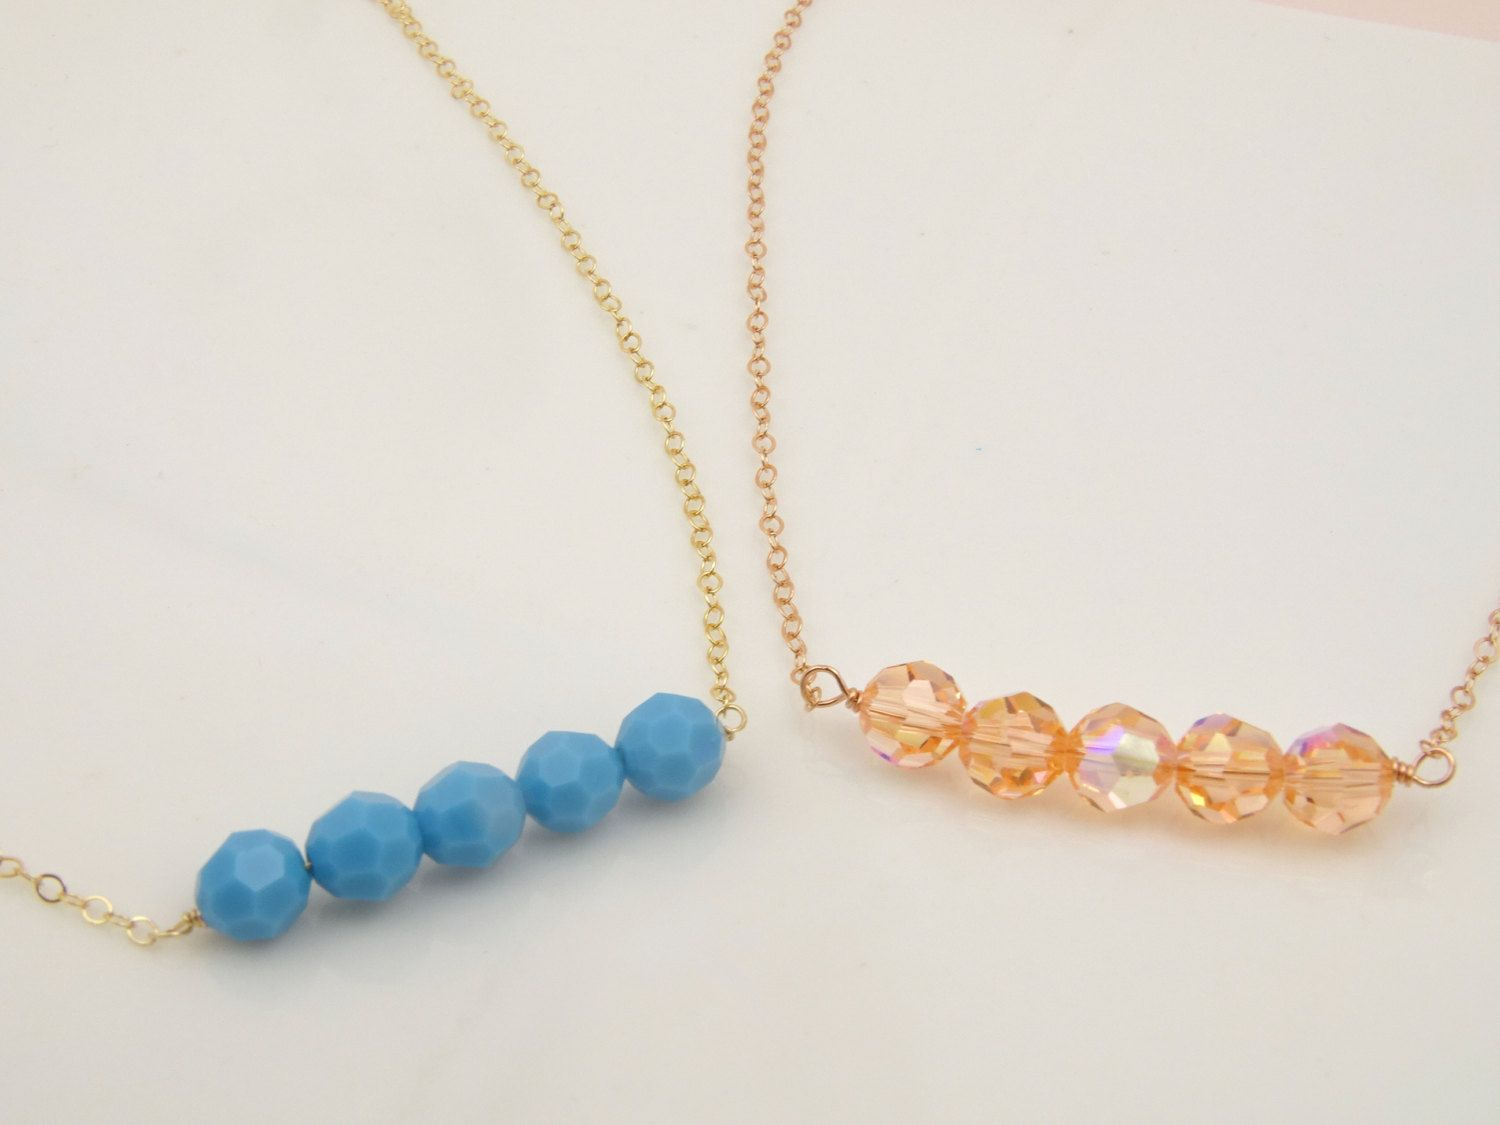 Beaded Necklace Bar Necklace Dainty Necklace Delicate Jewelry Best ...